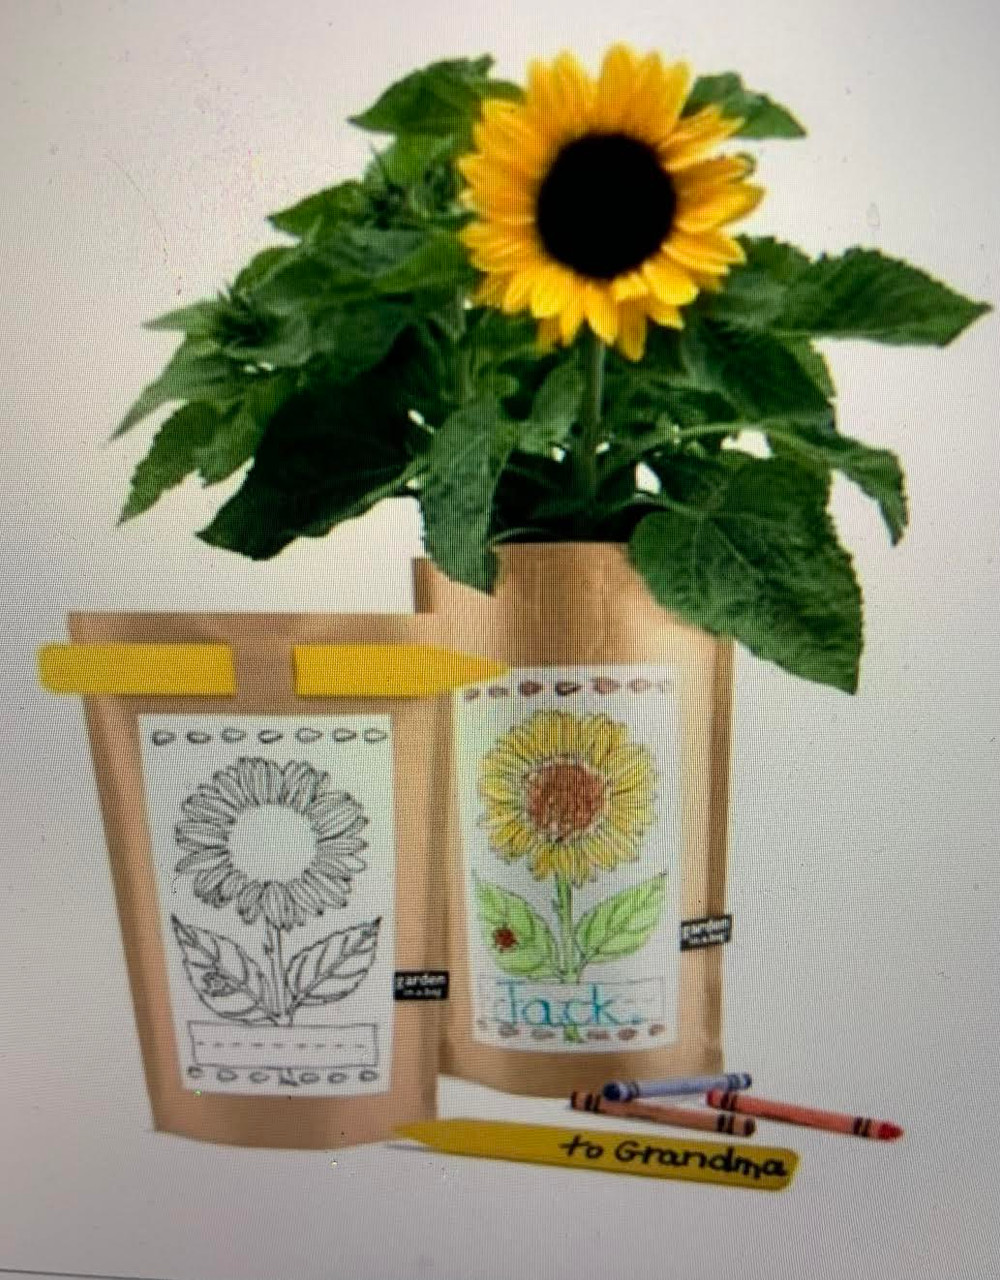 Temporarily Sold Out! Sunflower Garden In A Bag For Budding Gardeners!